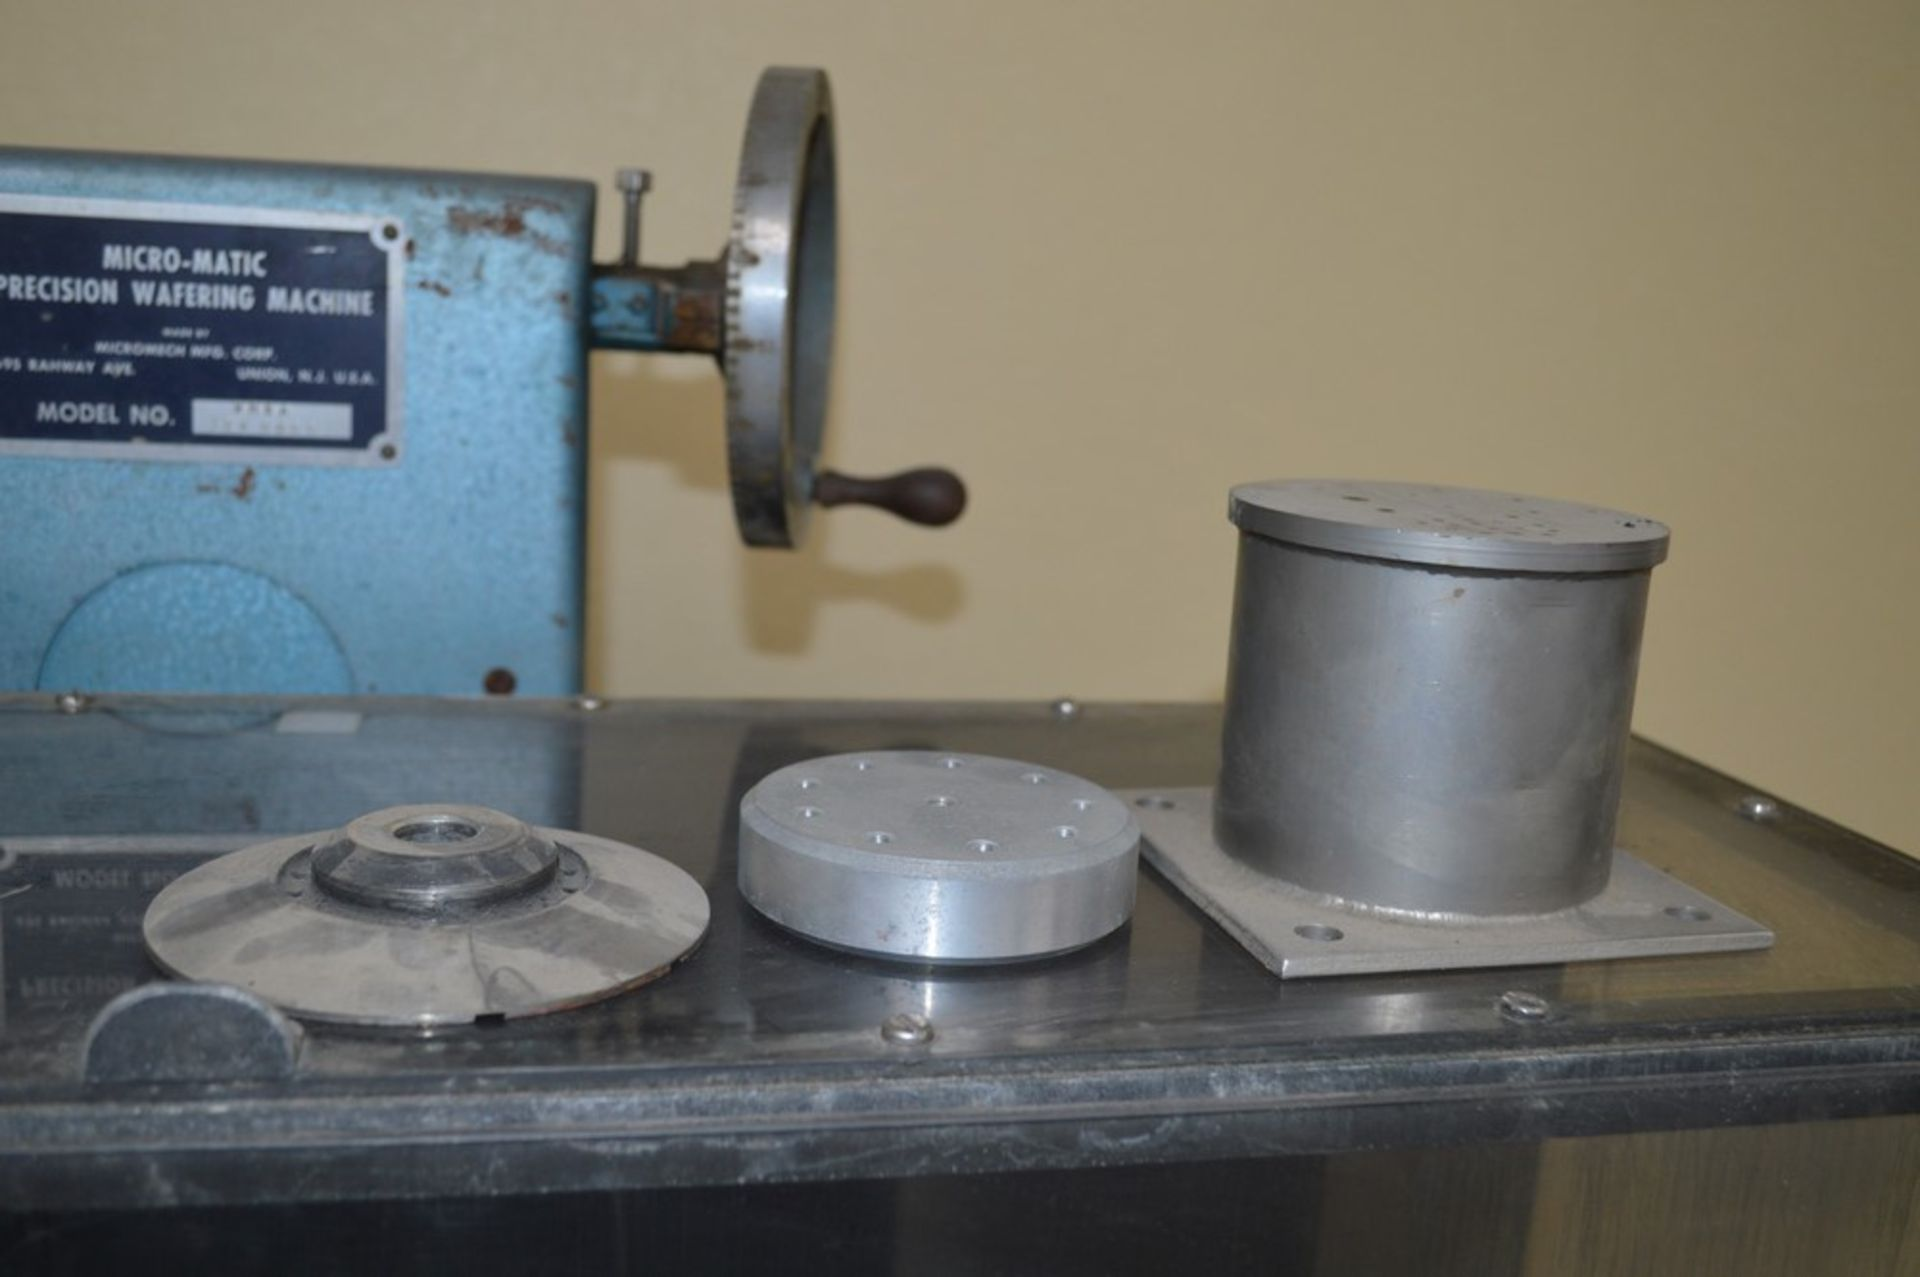 Micromatic Precision Diamond Wafering Saw model WMSA 1743055, spare parts, table and spindle speed - Image 7 of 9